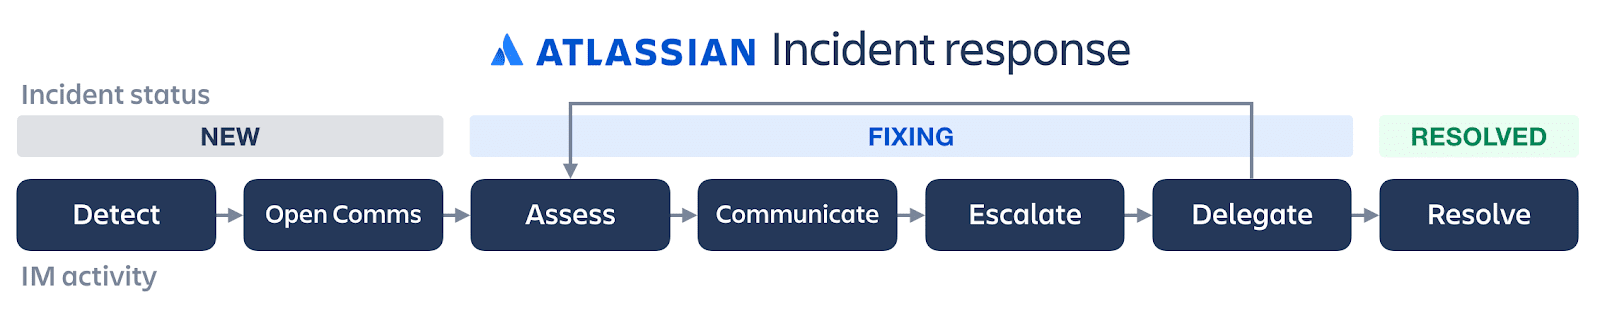 Gráfico do ciclo de vida de resposta a incidentes da Atlassian